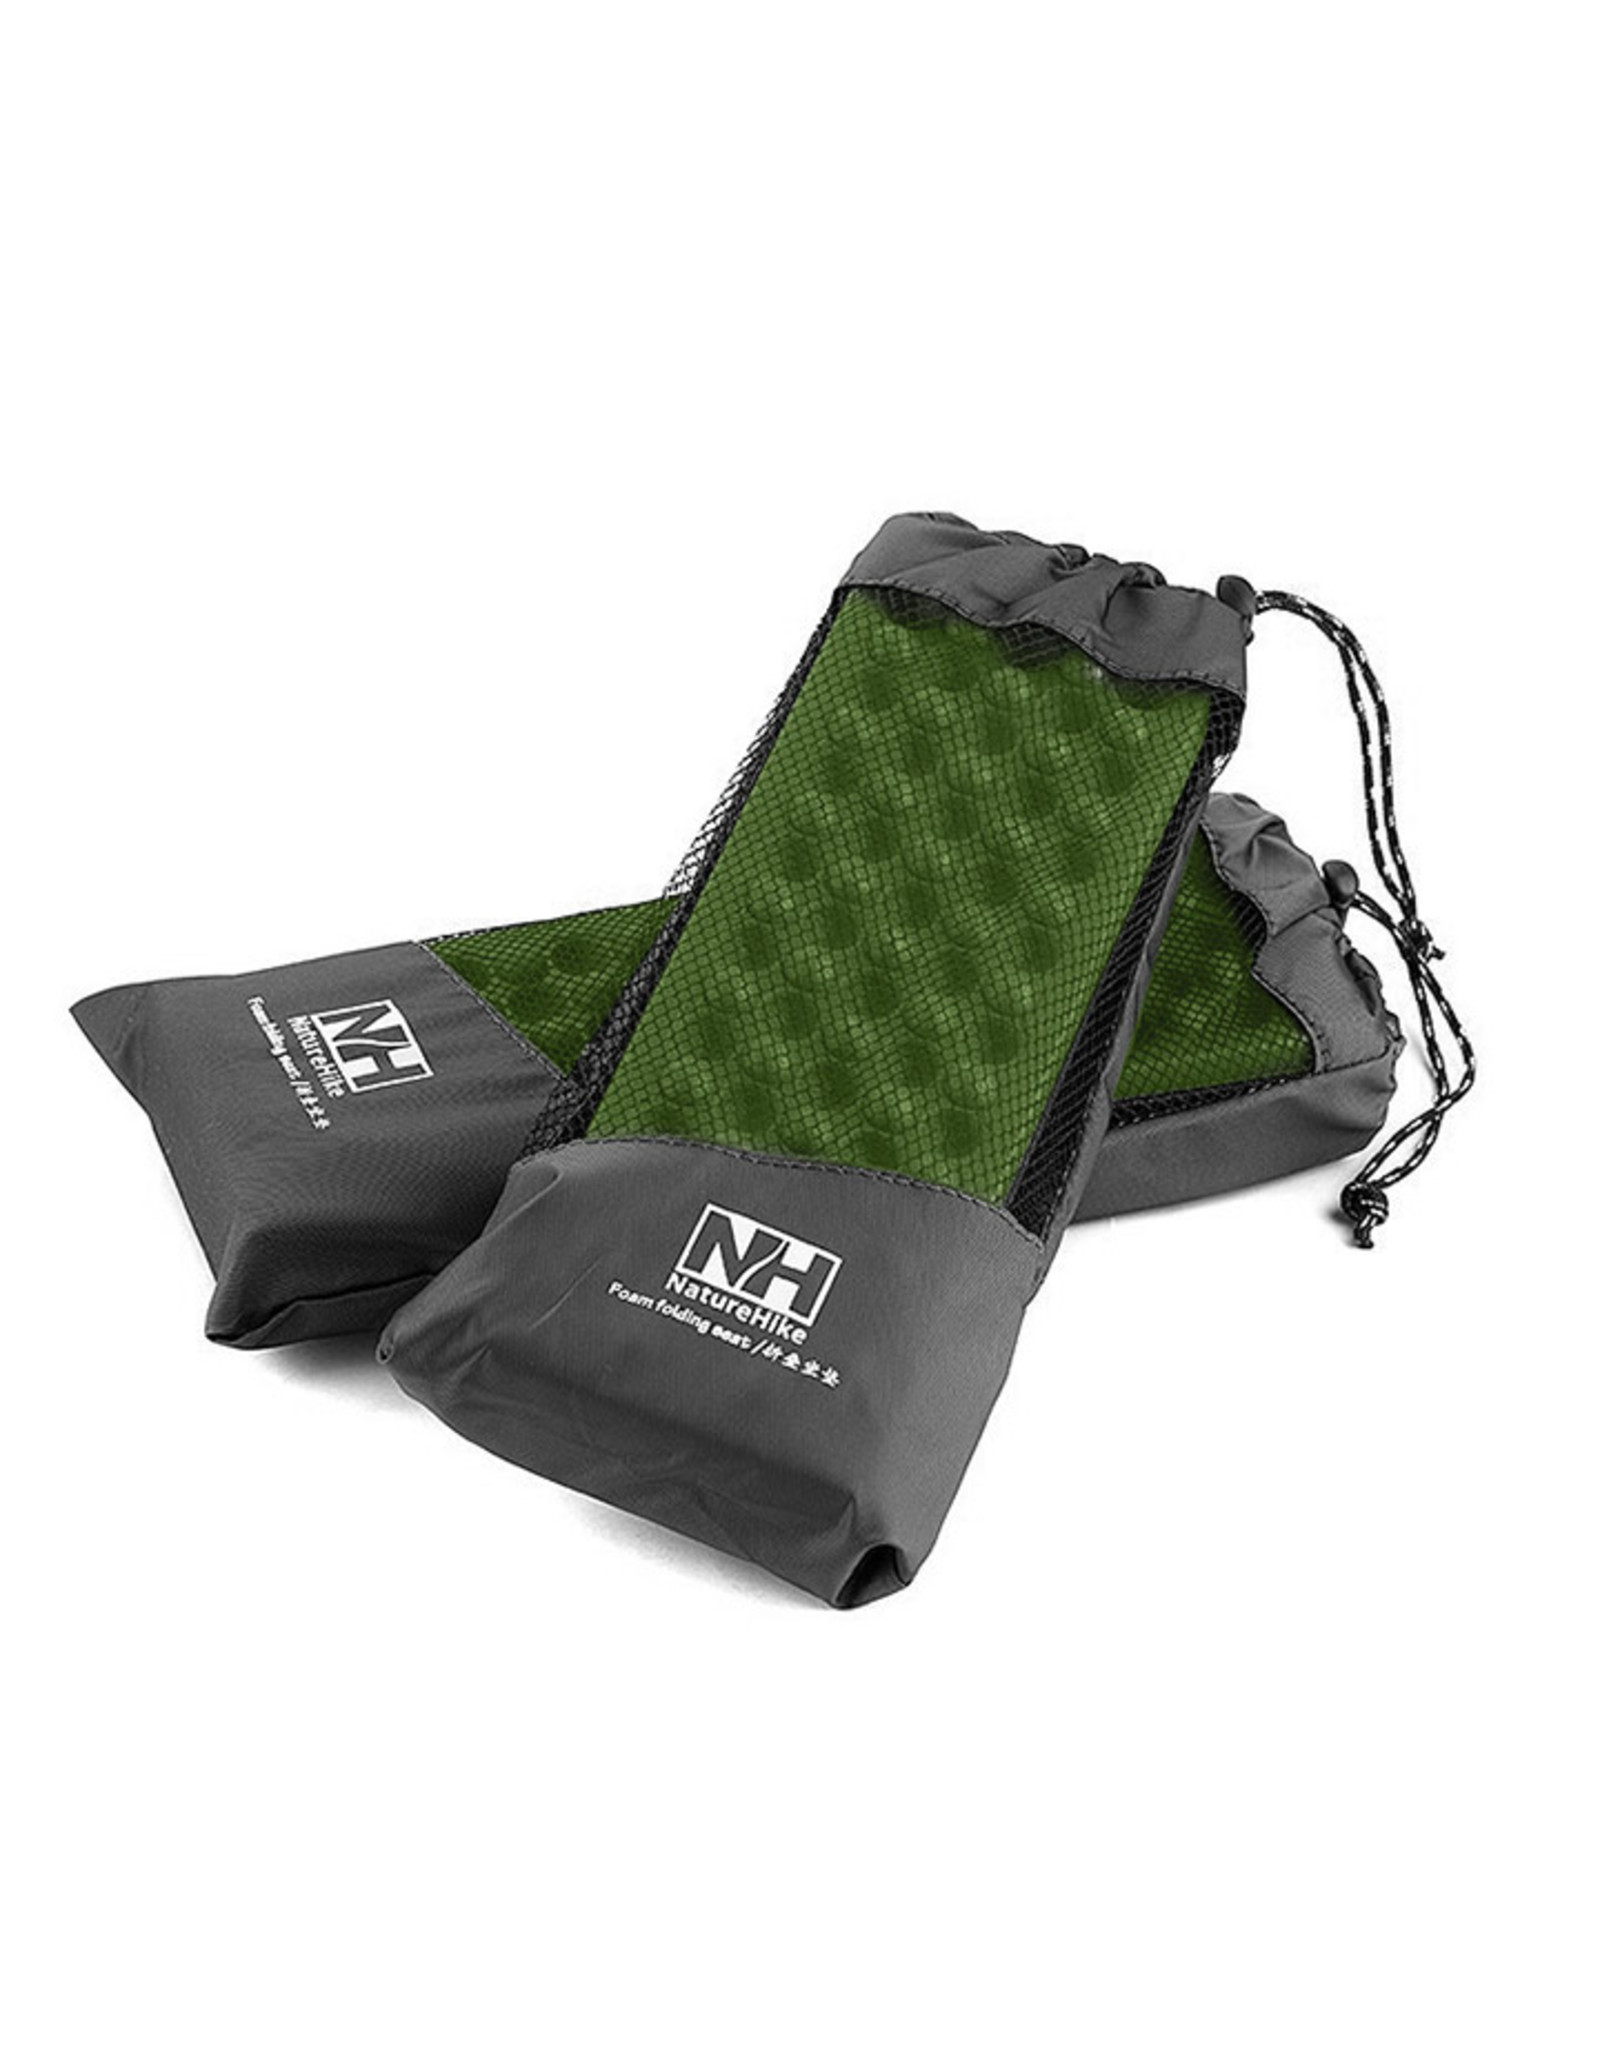 CIRCLE SALES NATURE HIKE FOLDING FOAM SEAT